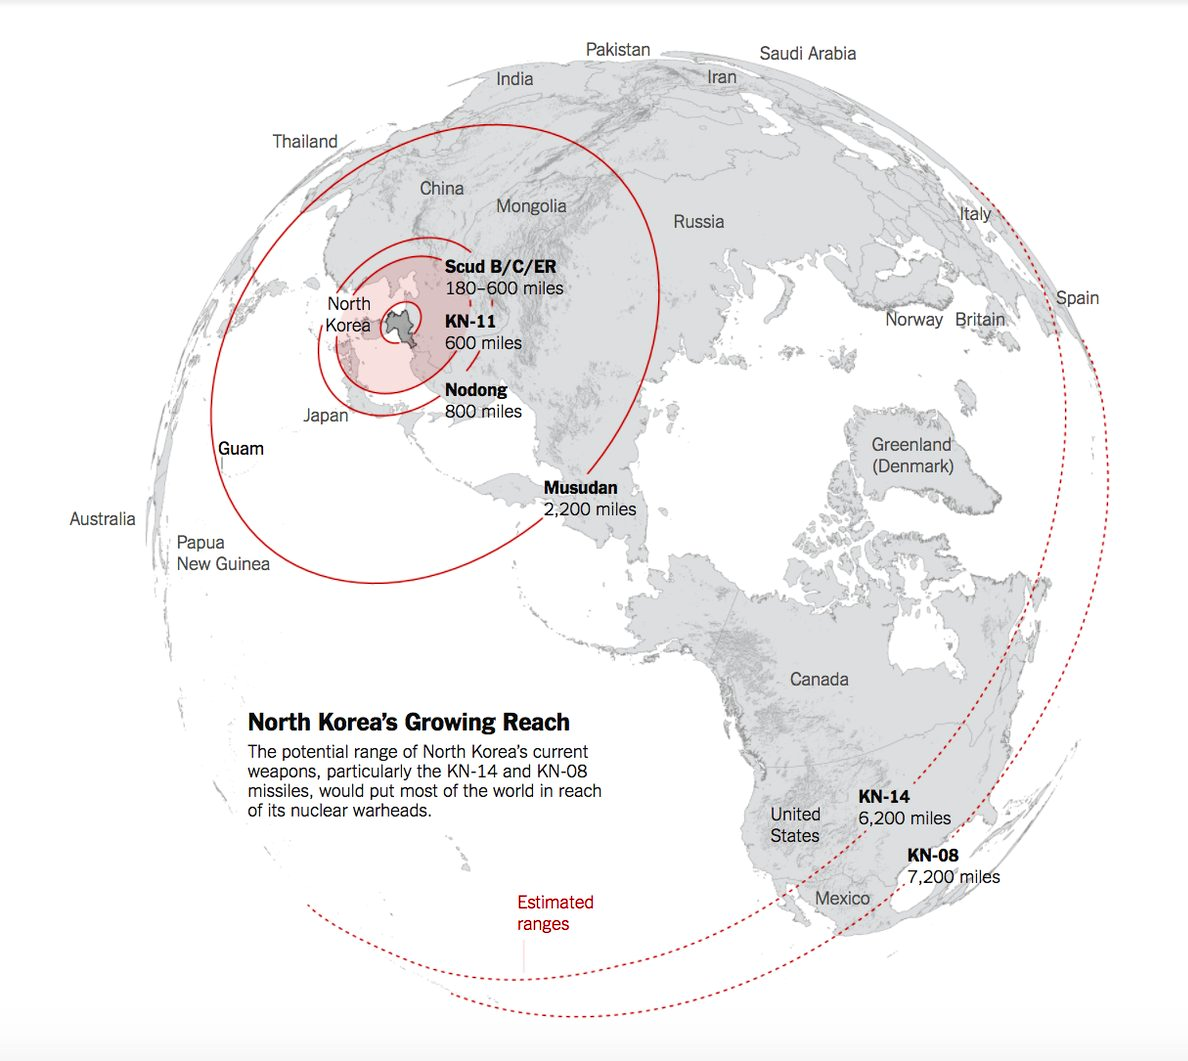 RightWing Foundation Scary Nuke Maps Drive Narrative on North